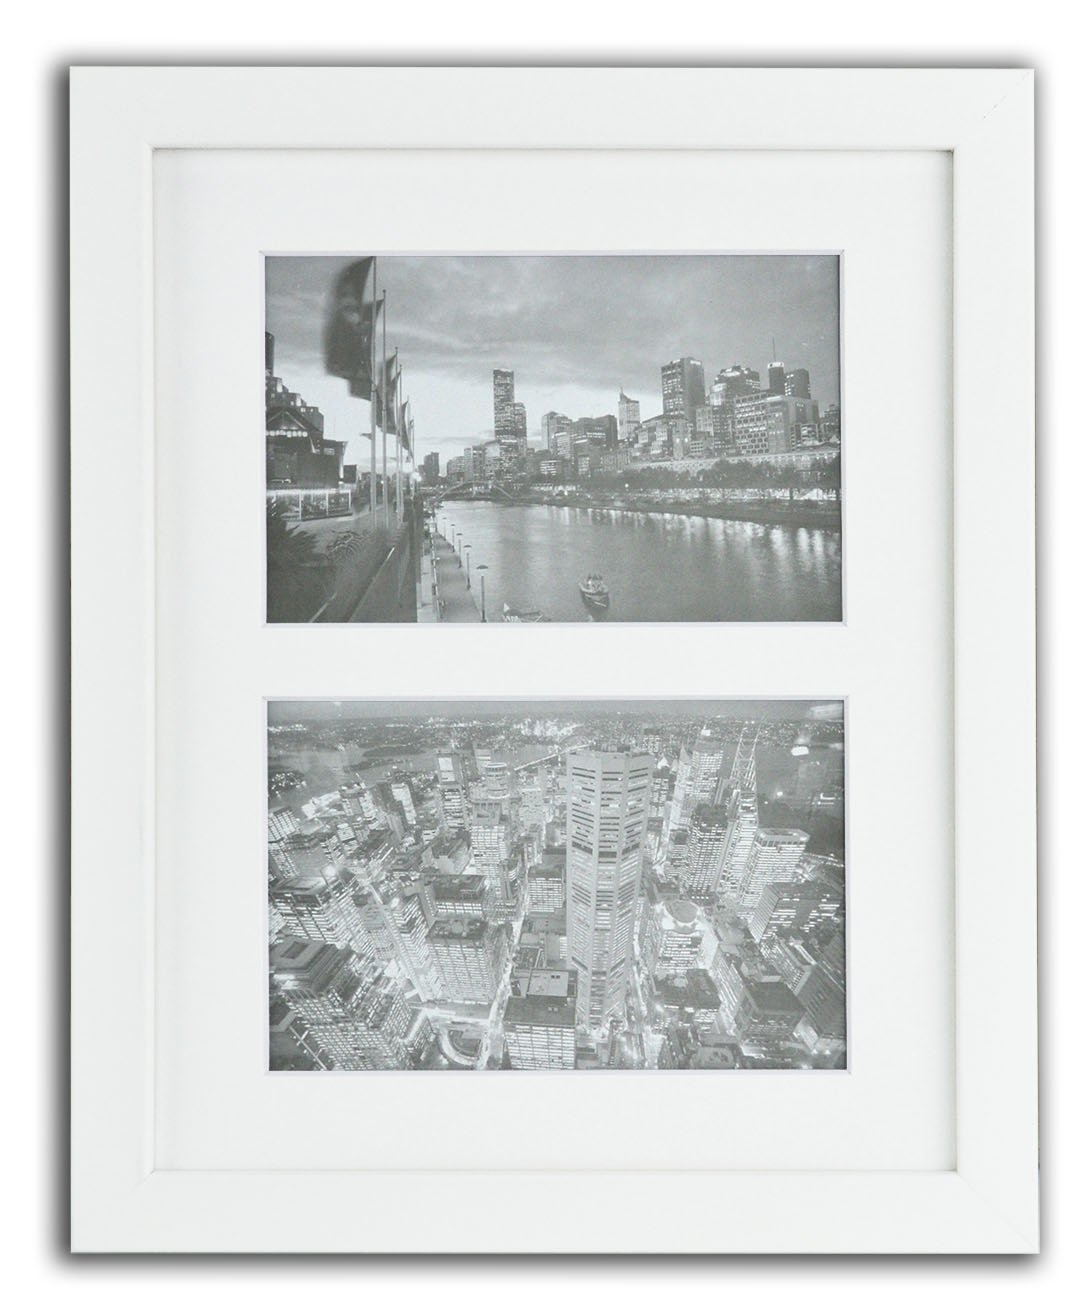 Golden State Art, 8x10 White Photo Wood Collage Frame with Real Glass and White Mat displays (2) 4x6 Pictures by Golden State Art